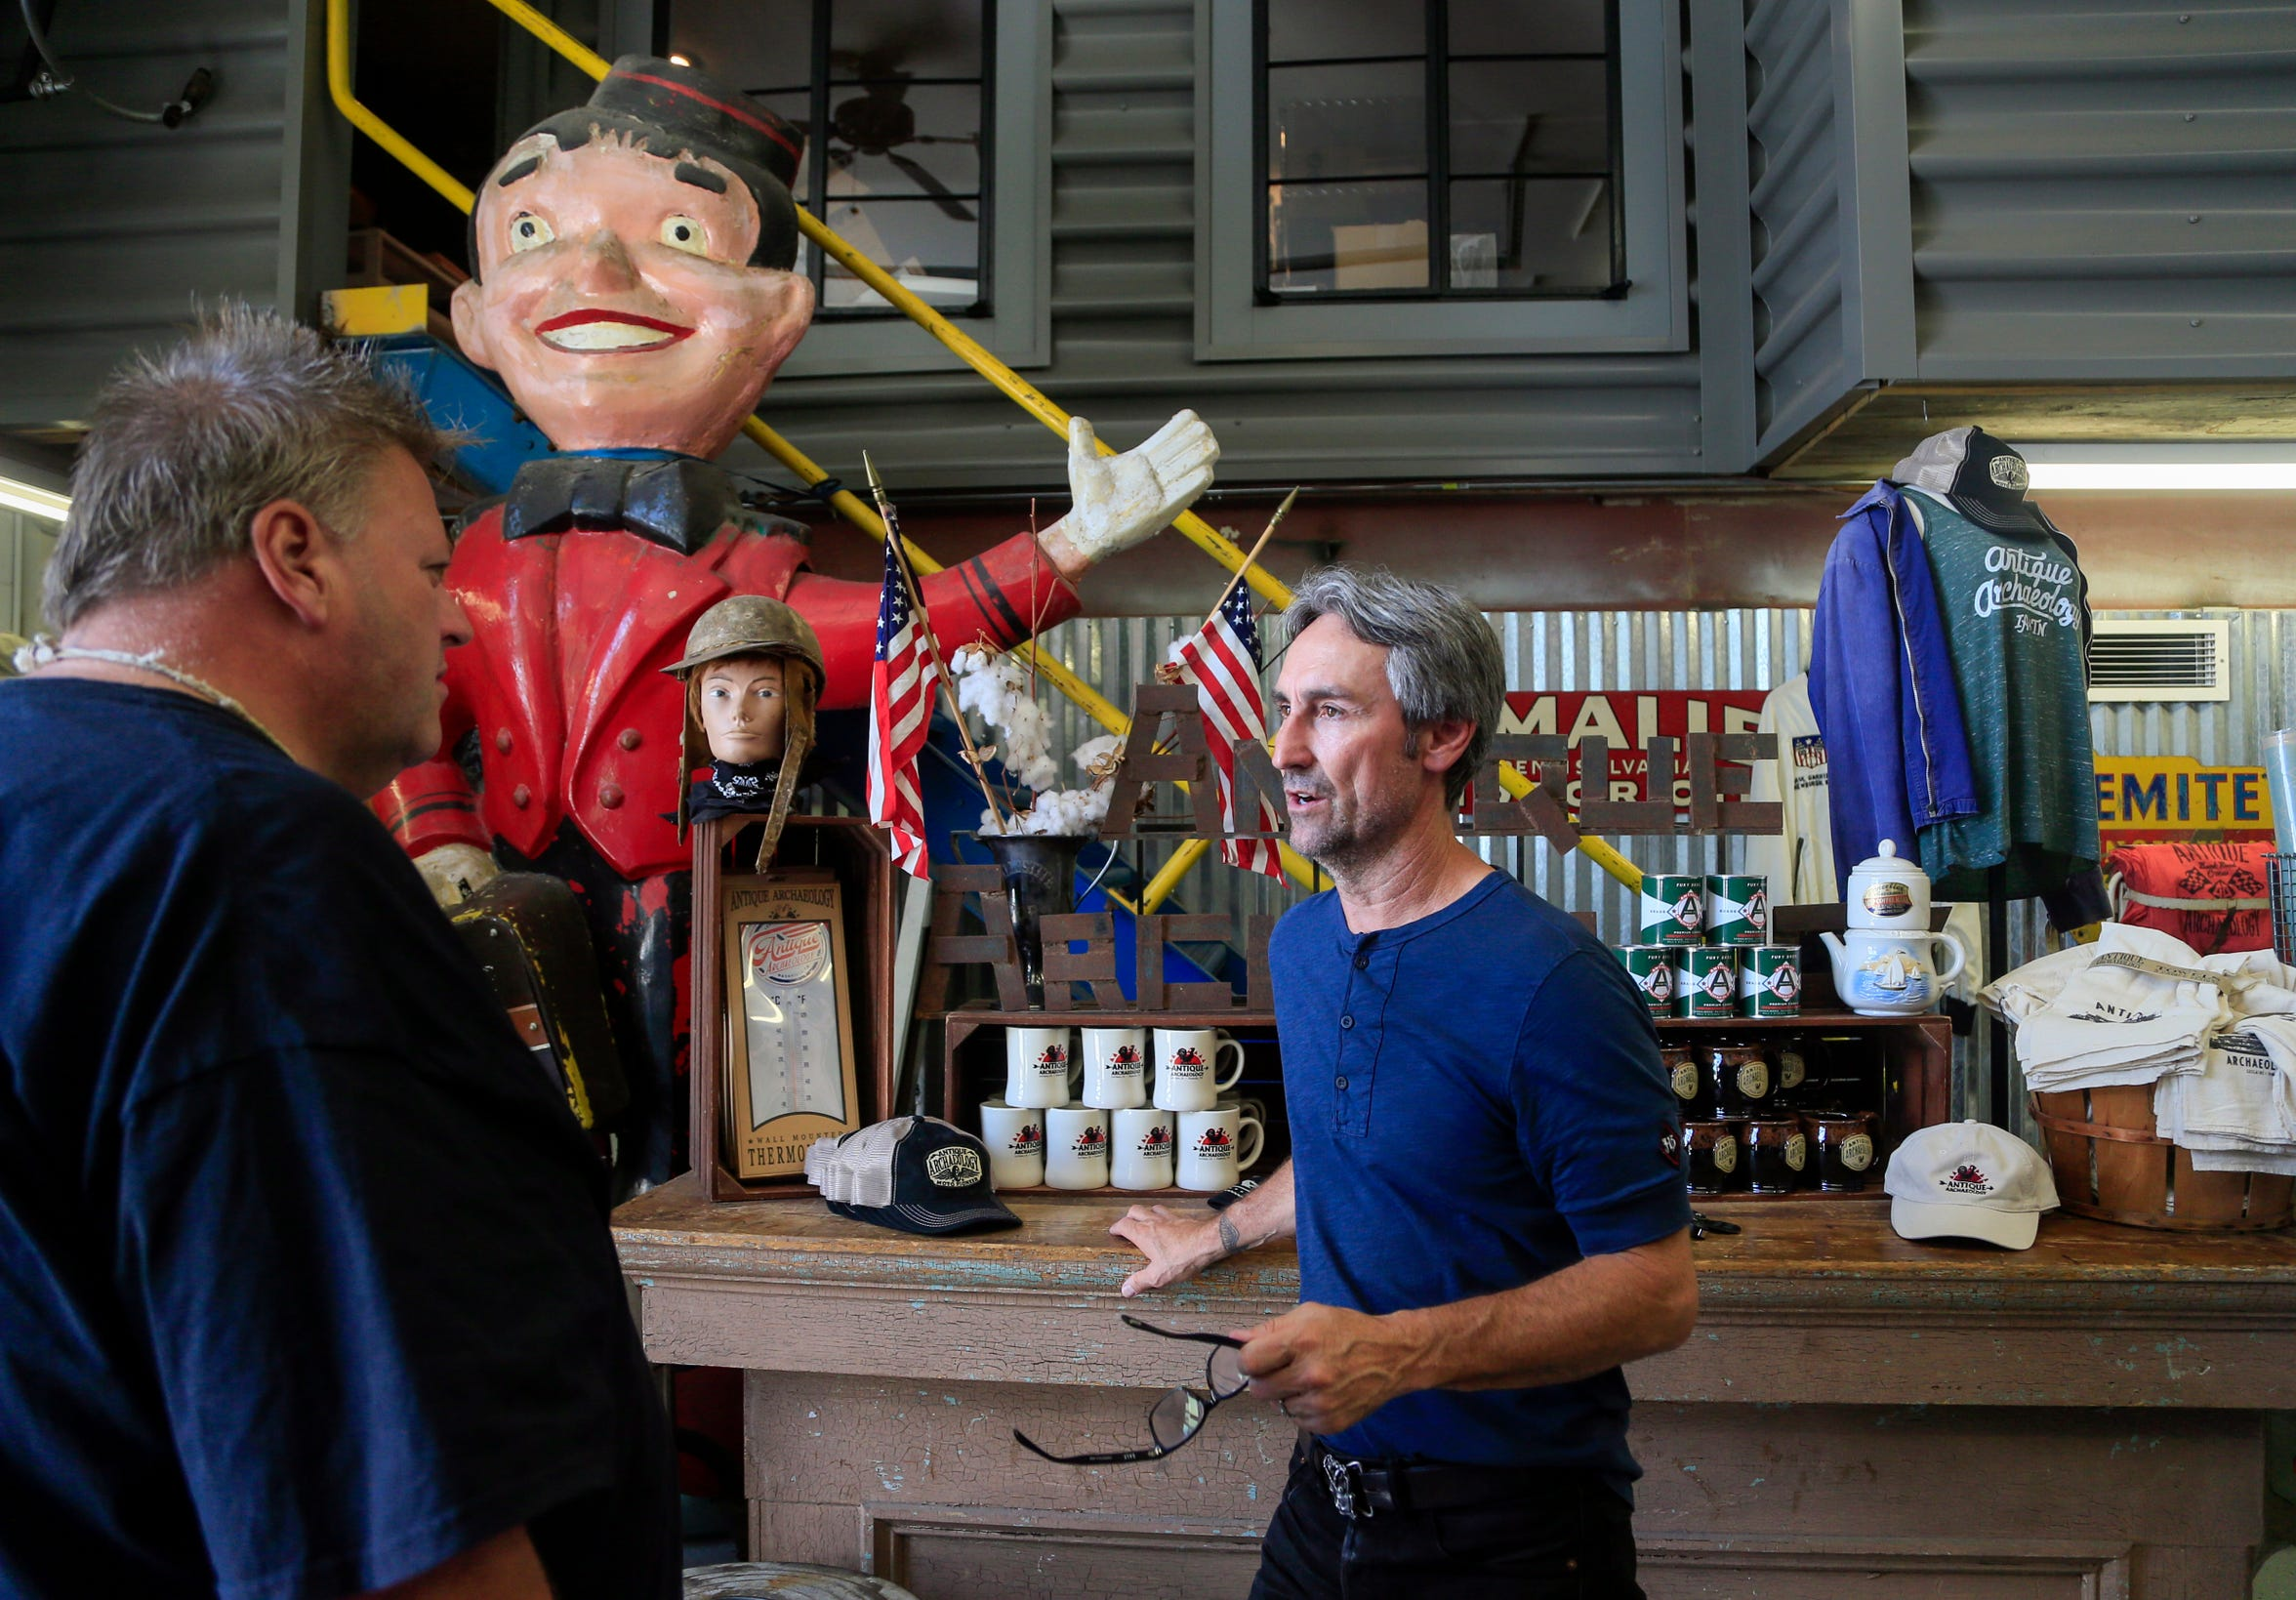 Celebrity Culture: Mike Wolfe of American Pickers fame chats with customers at his store Antique Archaeology in LeClaire June 27, 2018.